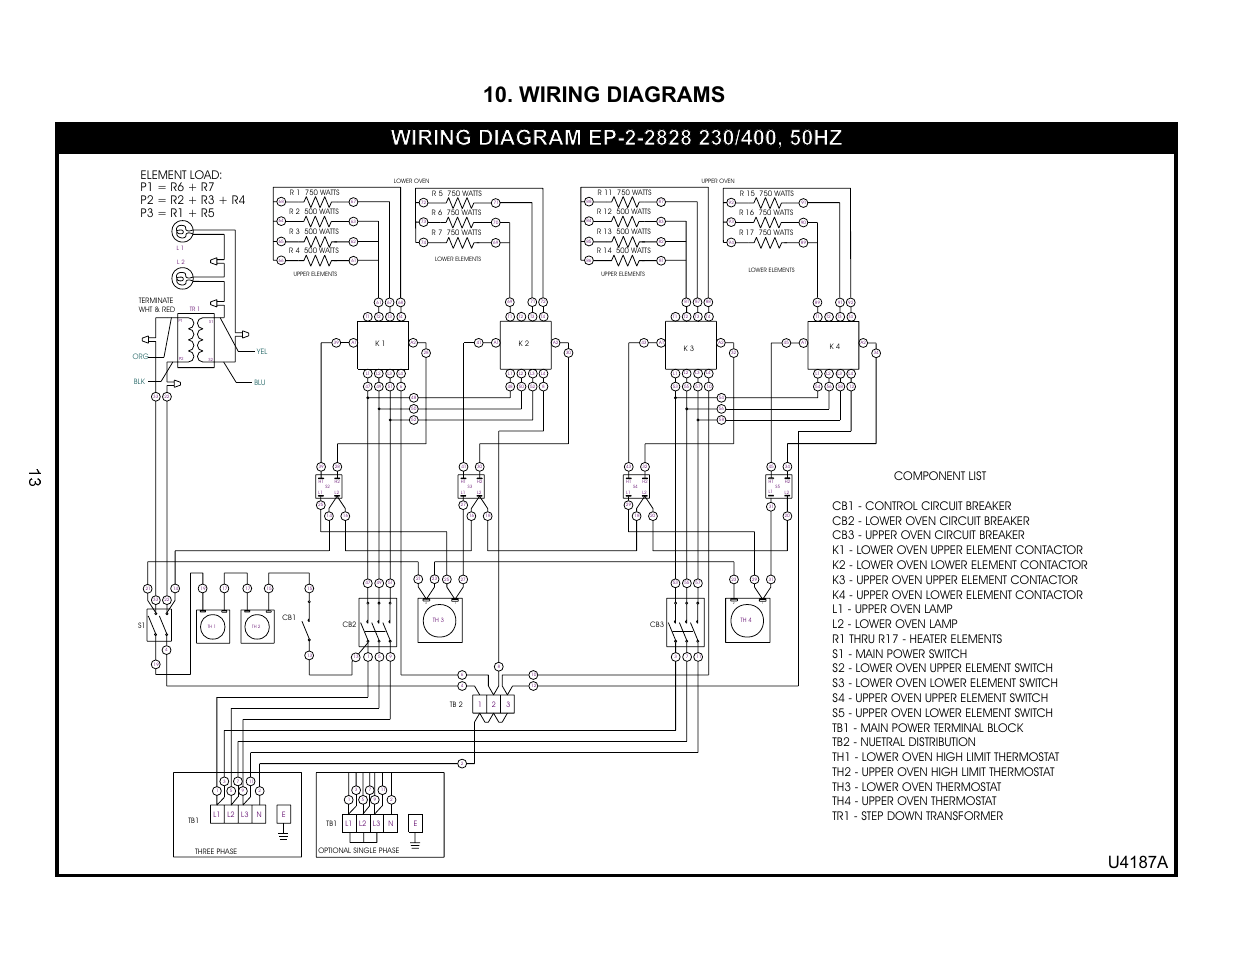 wiring diagrams  u4187a